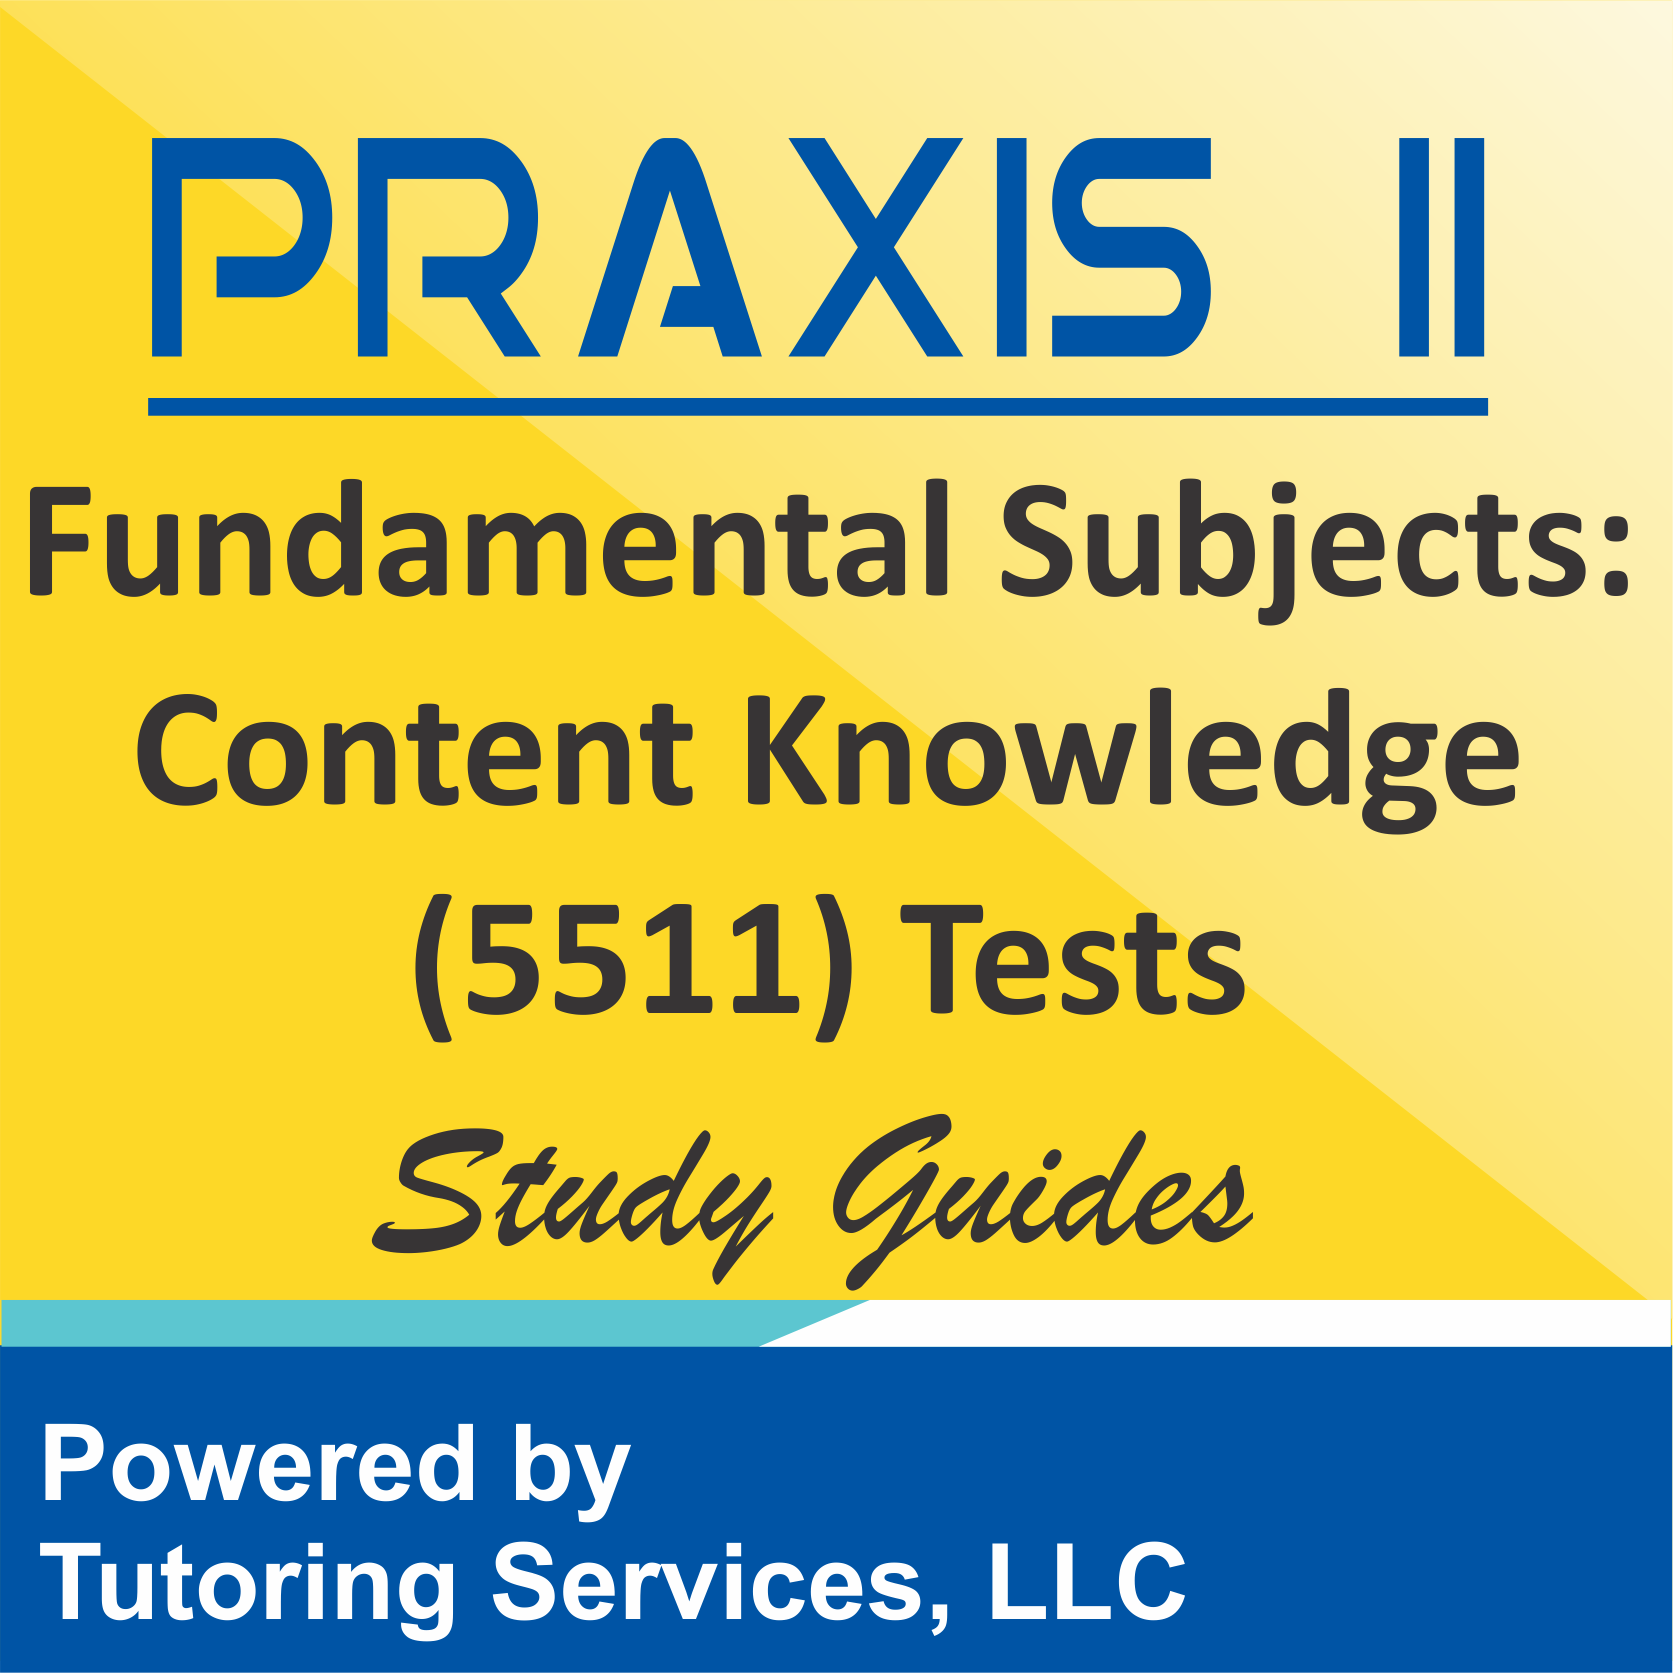 praxis ii fundamental subjects content knowledge 5511 subject rh studyguide net English Study Guide Spanish Study Guide